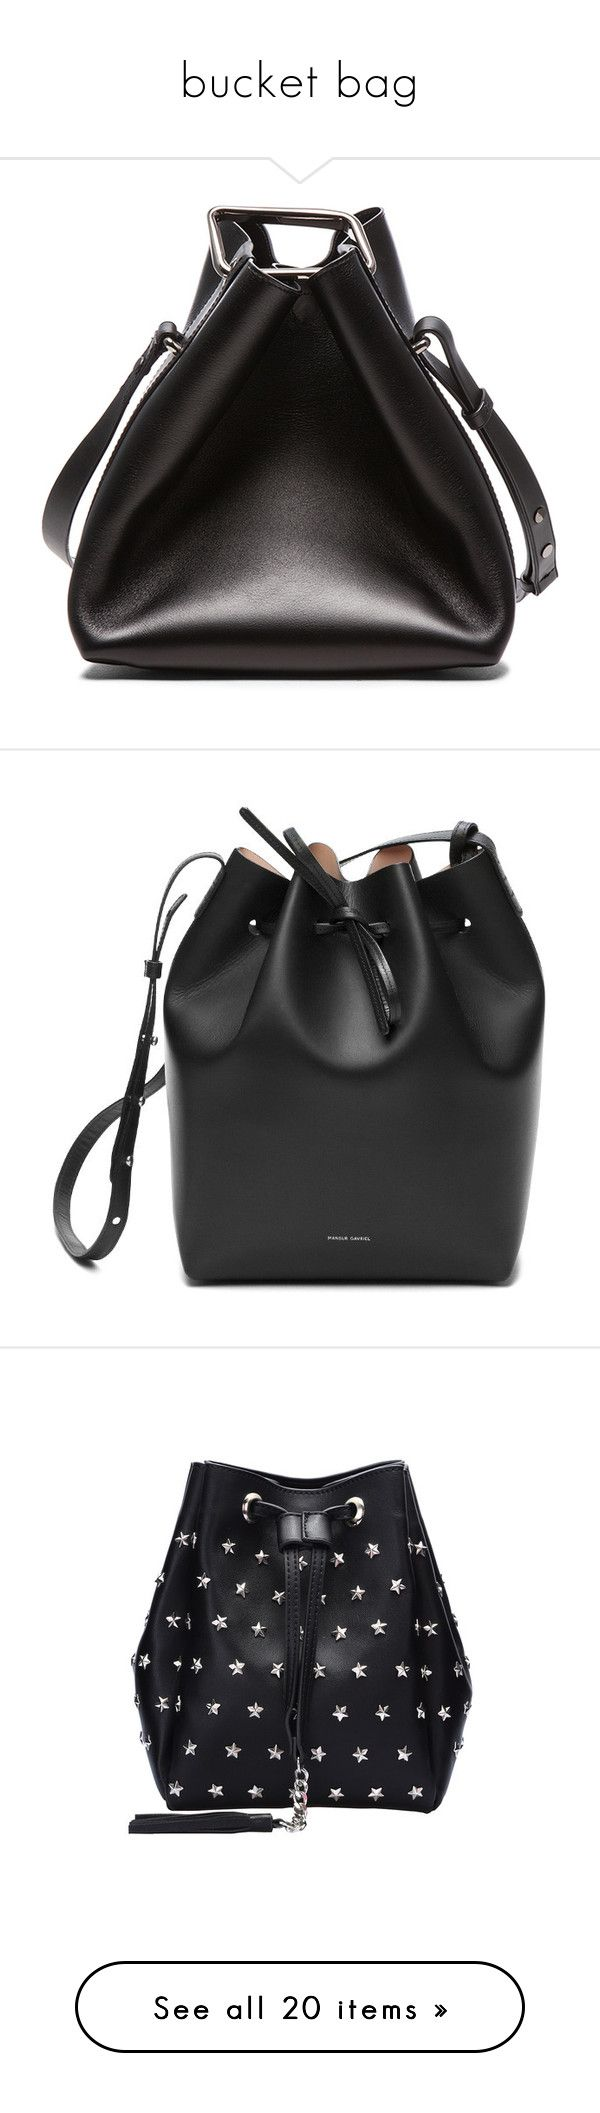 """bucket bag"" by val-valeriya ❤ liked on Polyvore featuring bags, handbags, shoulder bags, leather bucket bag, genuine leather handbags, shoulder handbags, mini shoulder bag, leather handbags, purses and handbags shoulder bags"